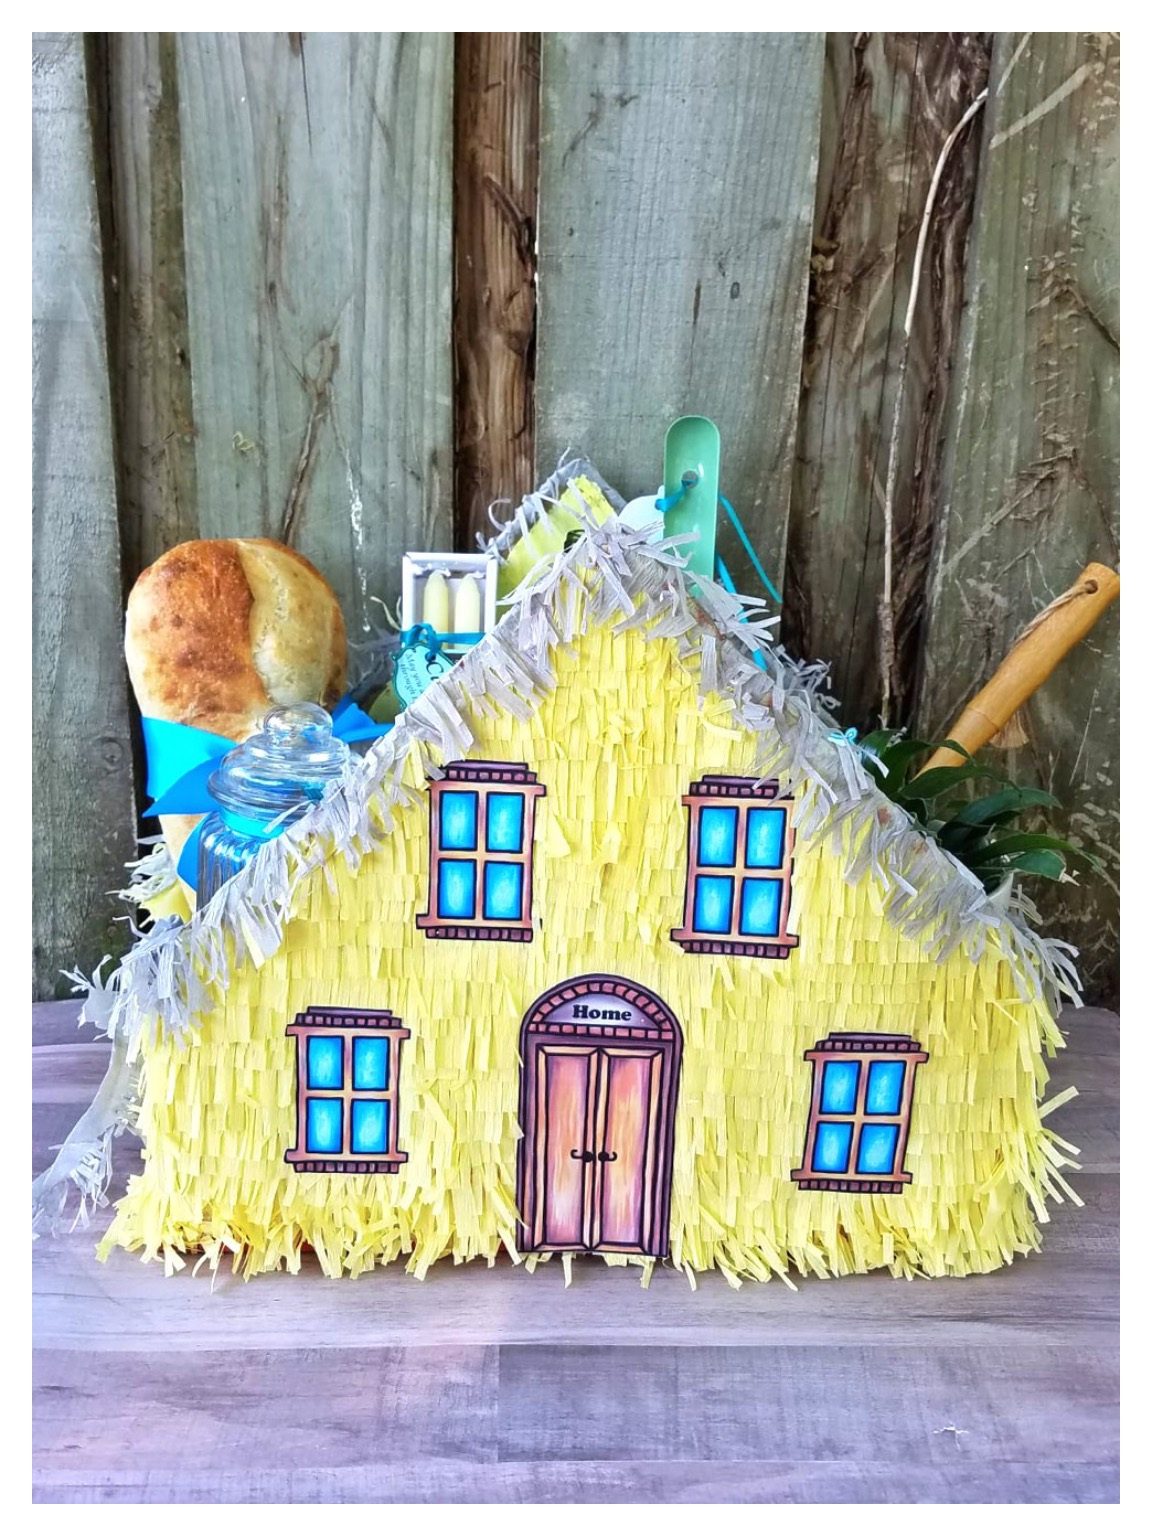 photograph regarding House From Up Printable identified as Generate a Do-it-yourself housewarming basket Area piñata guideline with